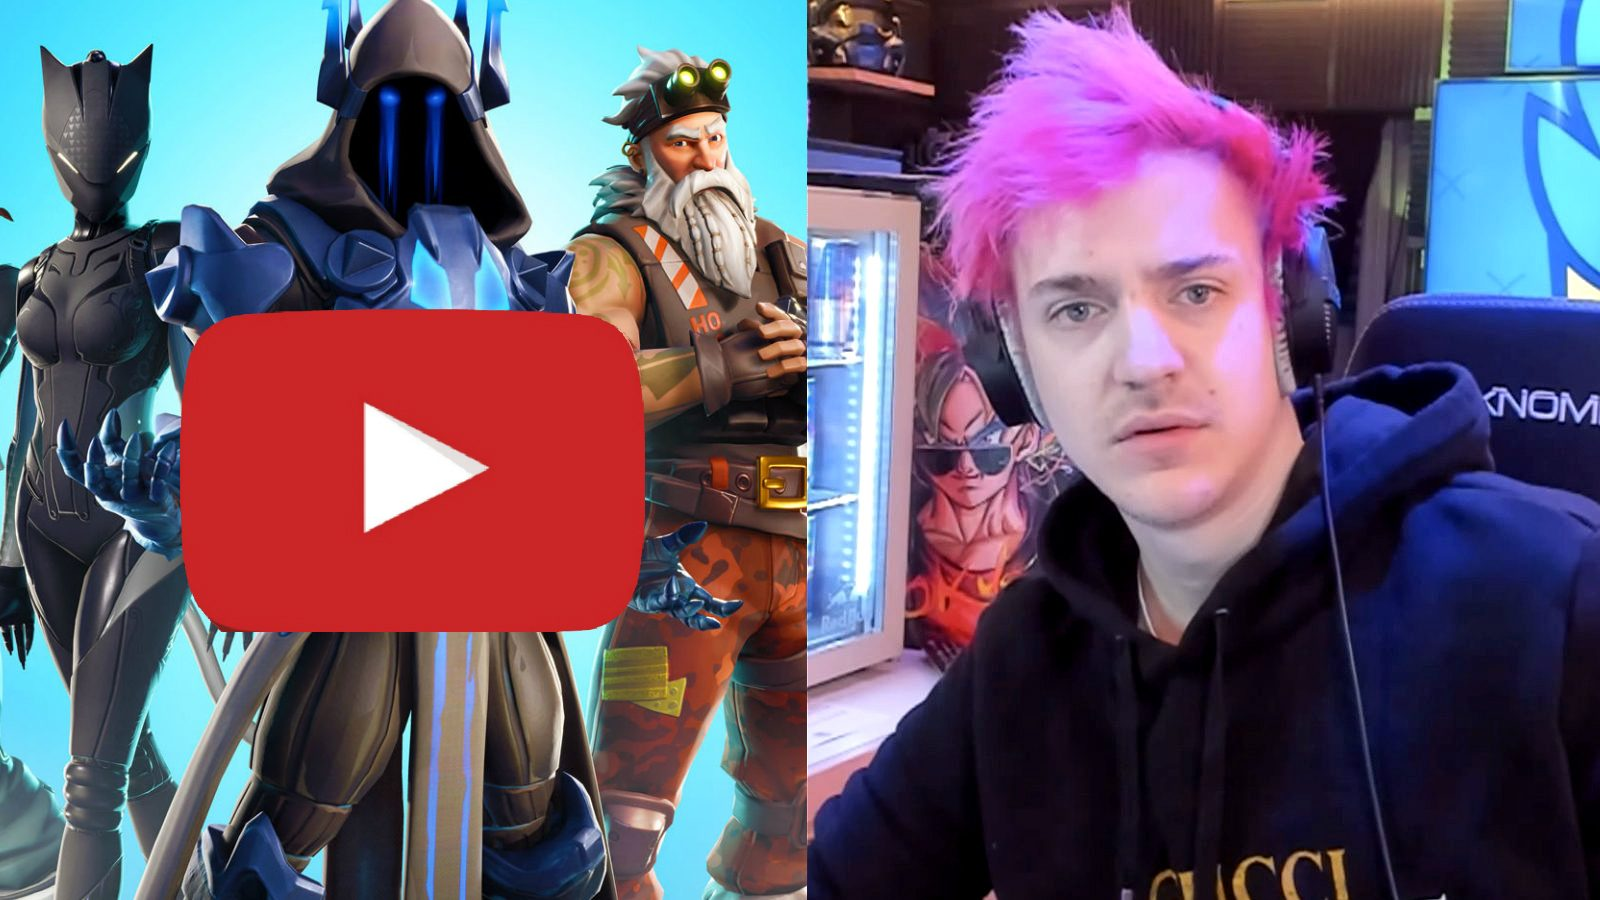 Ninja Has Fortnite Youtube Video Demonitized For Blood And Gore Updated Dexerto However, according to a conversation ryan wyatt, youtube's director of gaming content and partnerships, recently had with the verge, fortnite is not actually youtube's no. fortnite youtube video demonitized